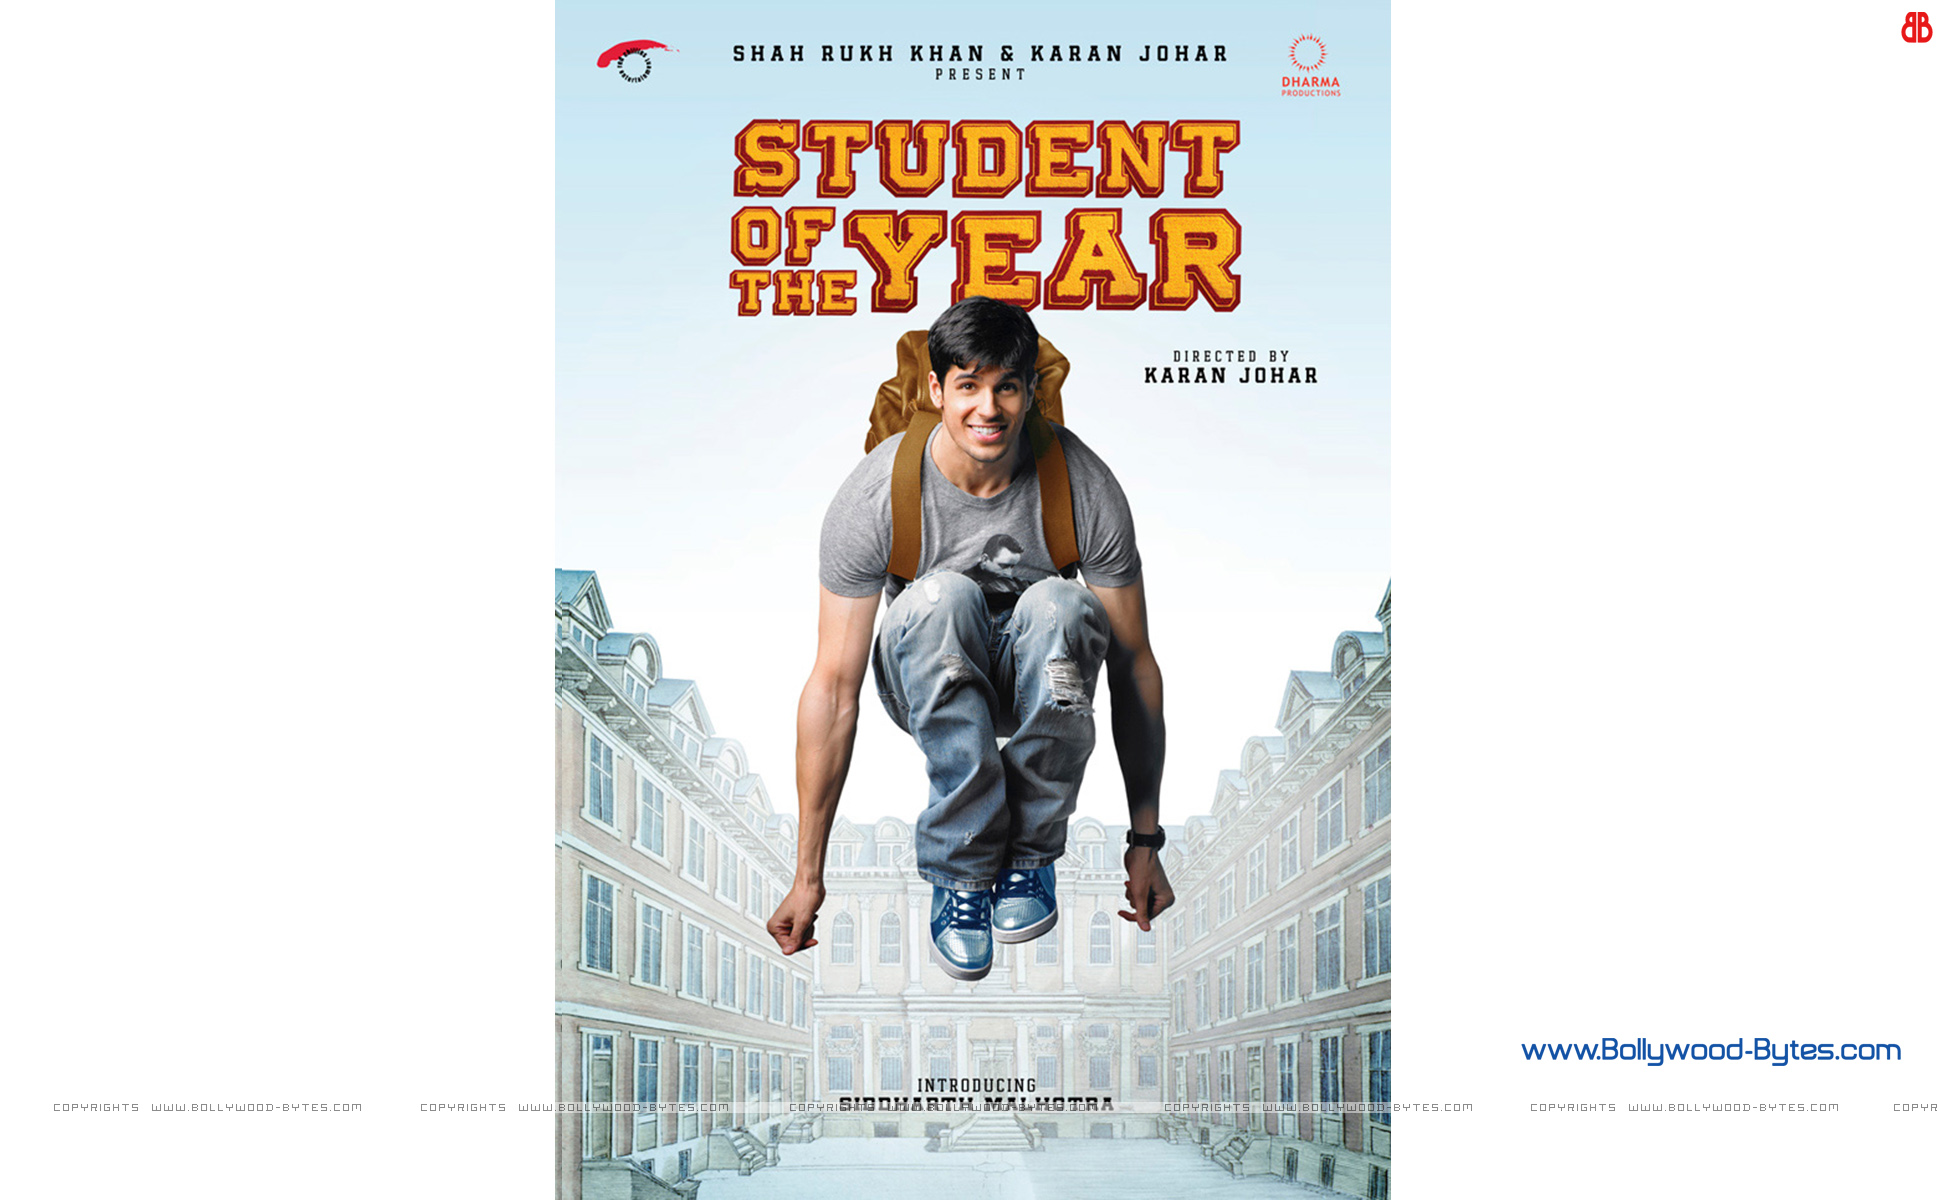 http://1.bp.blogspot.com/--hU5rSohC9g/UBZilSVVuDI/AAAAAAAAMjc/Ma7G_B8VJoo/s1940/Student-Of-The-Year-Sidharth-Malhotra-WideScreen-HD-Wallaper-03.jpg